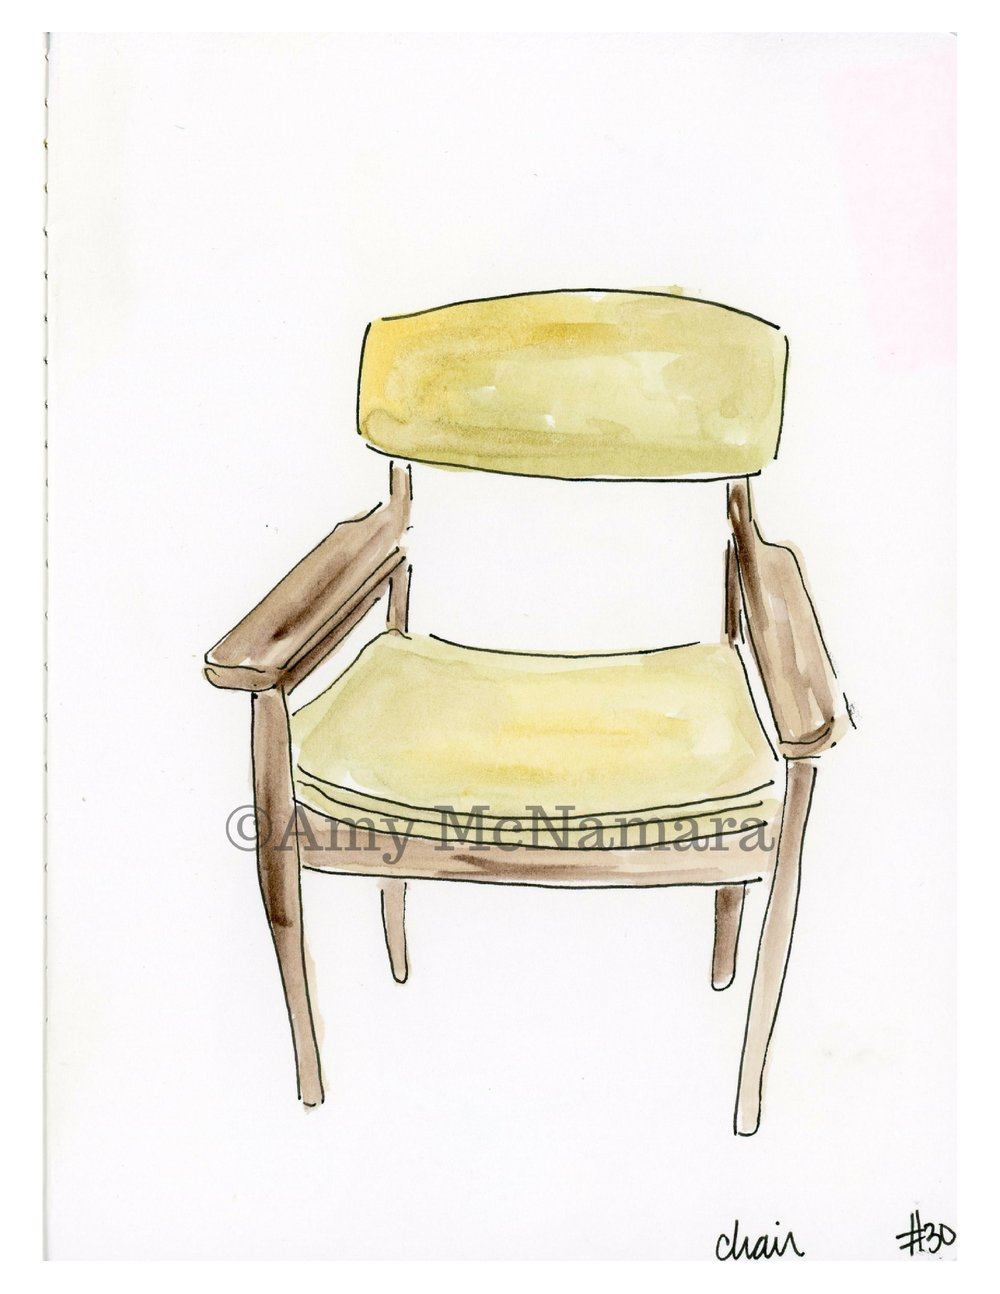 No. 30 Chair